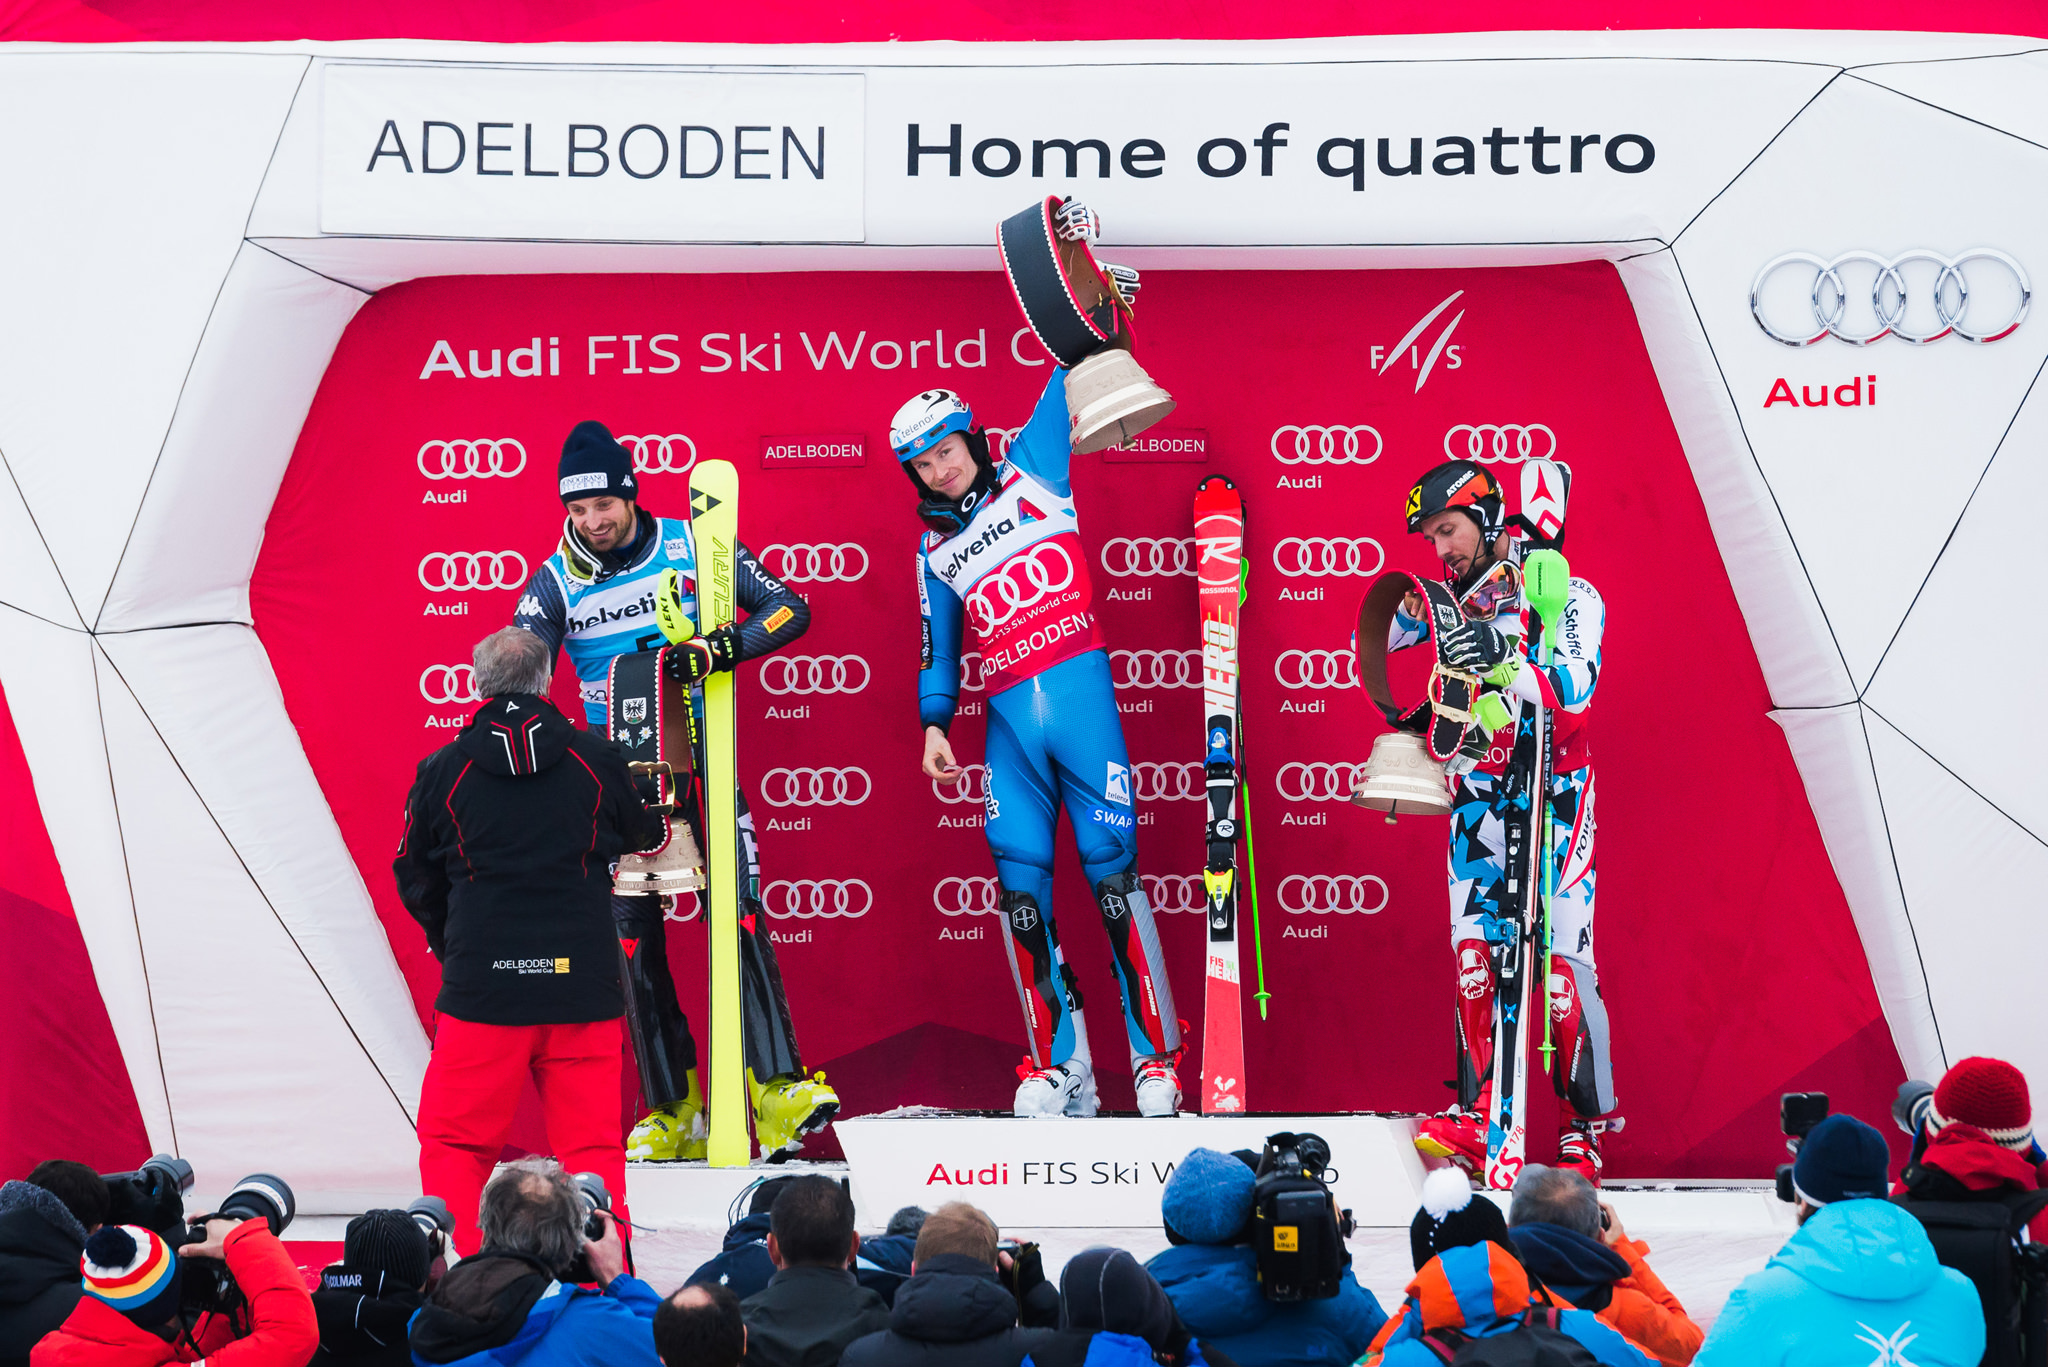 norwegian ski racer henrik kristoffersen on the podium in adelbo